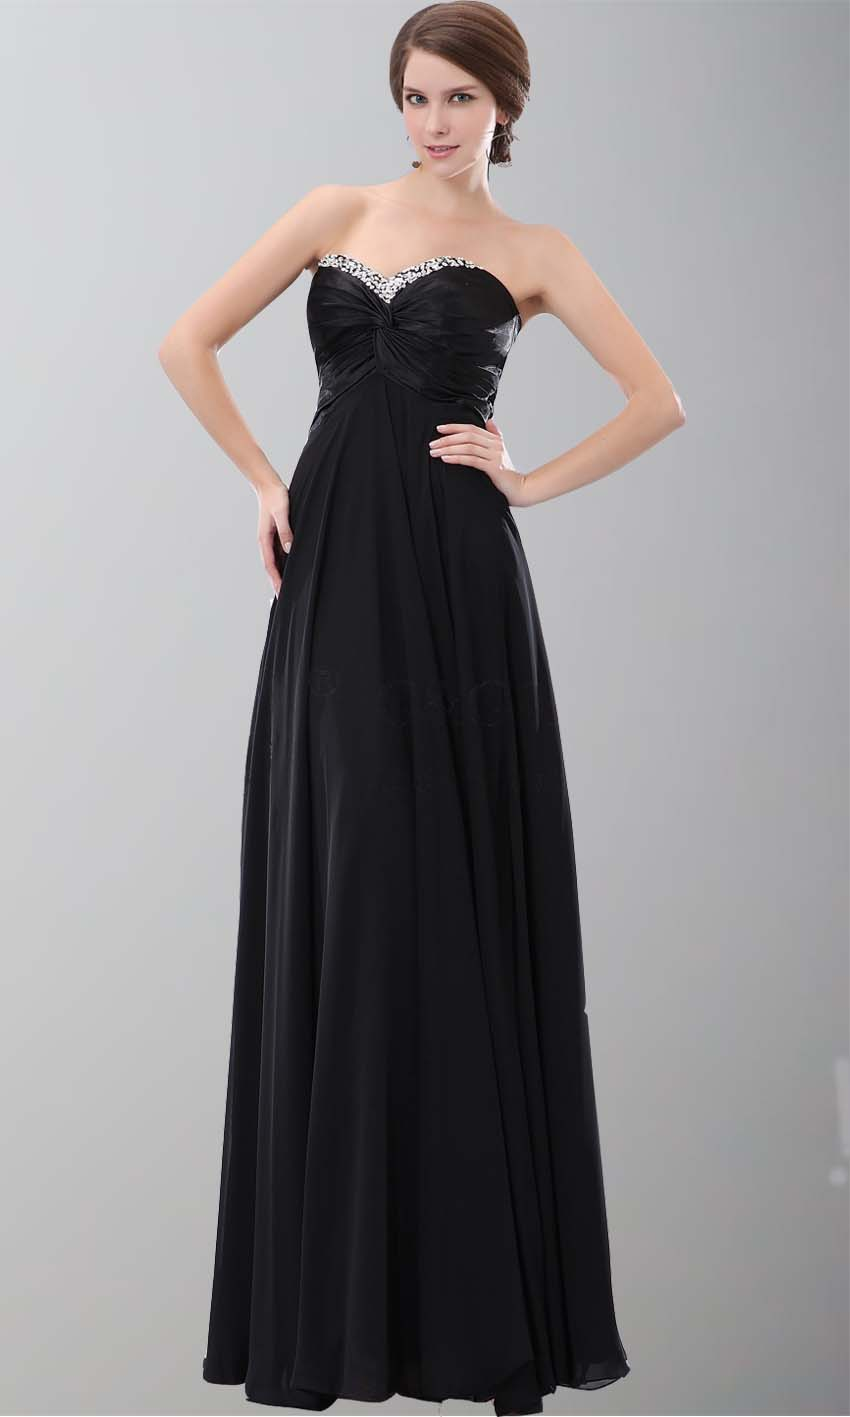 Twist Wrinkle Bust A-line Prom Dresses KSP201 [KSP201] - £92.00 : Cheap Prom Dresses Uk, Bridesmaid Dresses, 2014 Prom & Evening Dresses, Look for cheap elegant prom dresses 2014, cocktail gowns, or dresses for special occasions? kissprom.co.uk offers various bridesmaid dresses, evening dress, free shipping to UK etc.